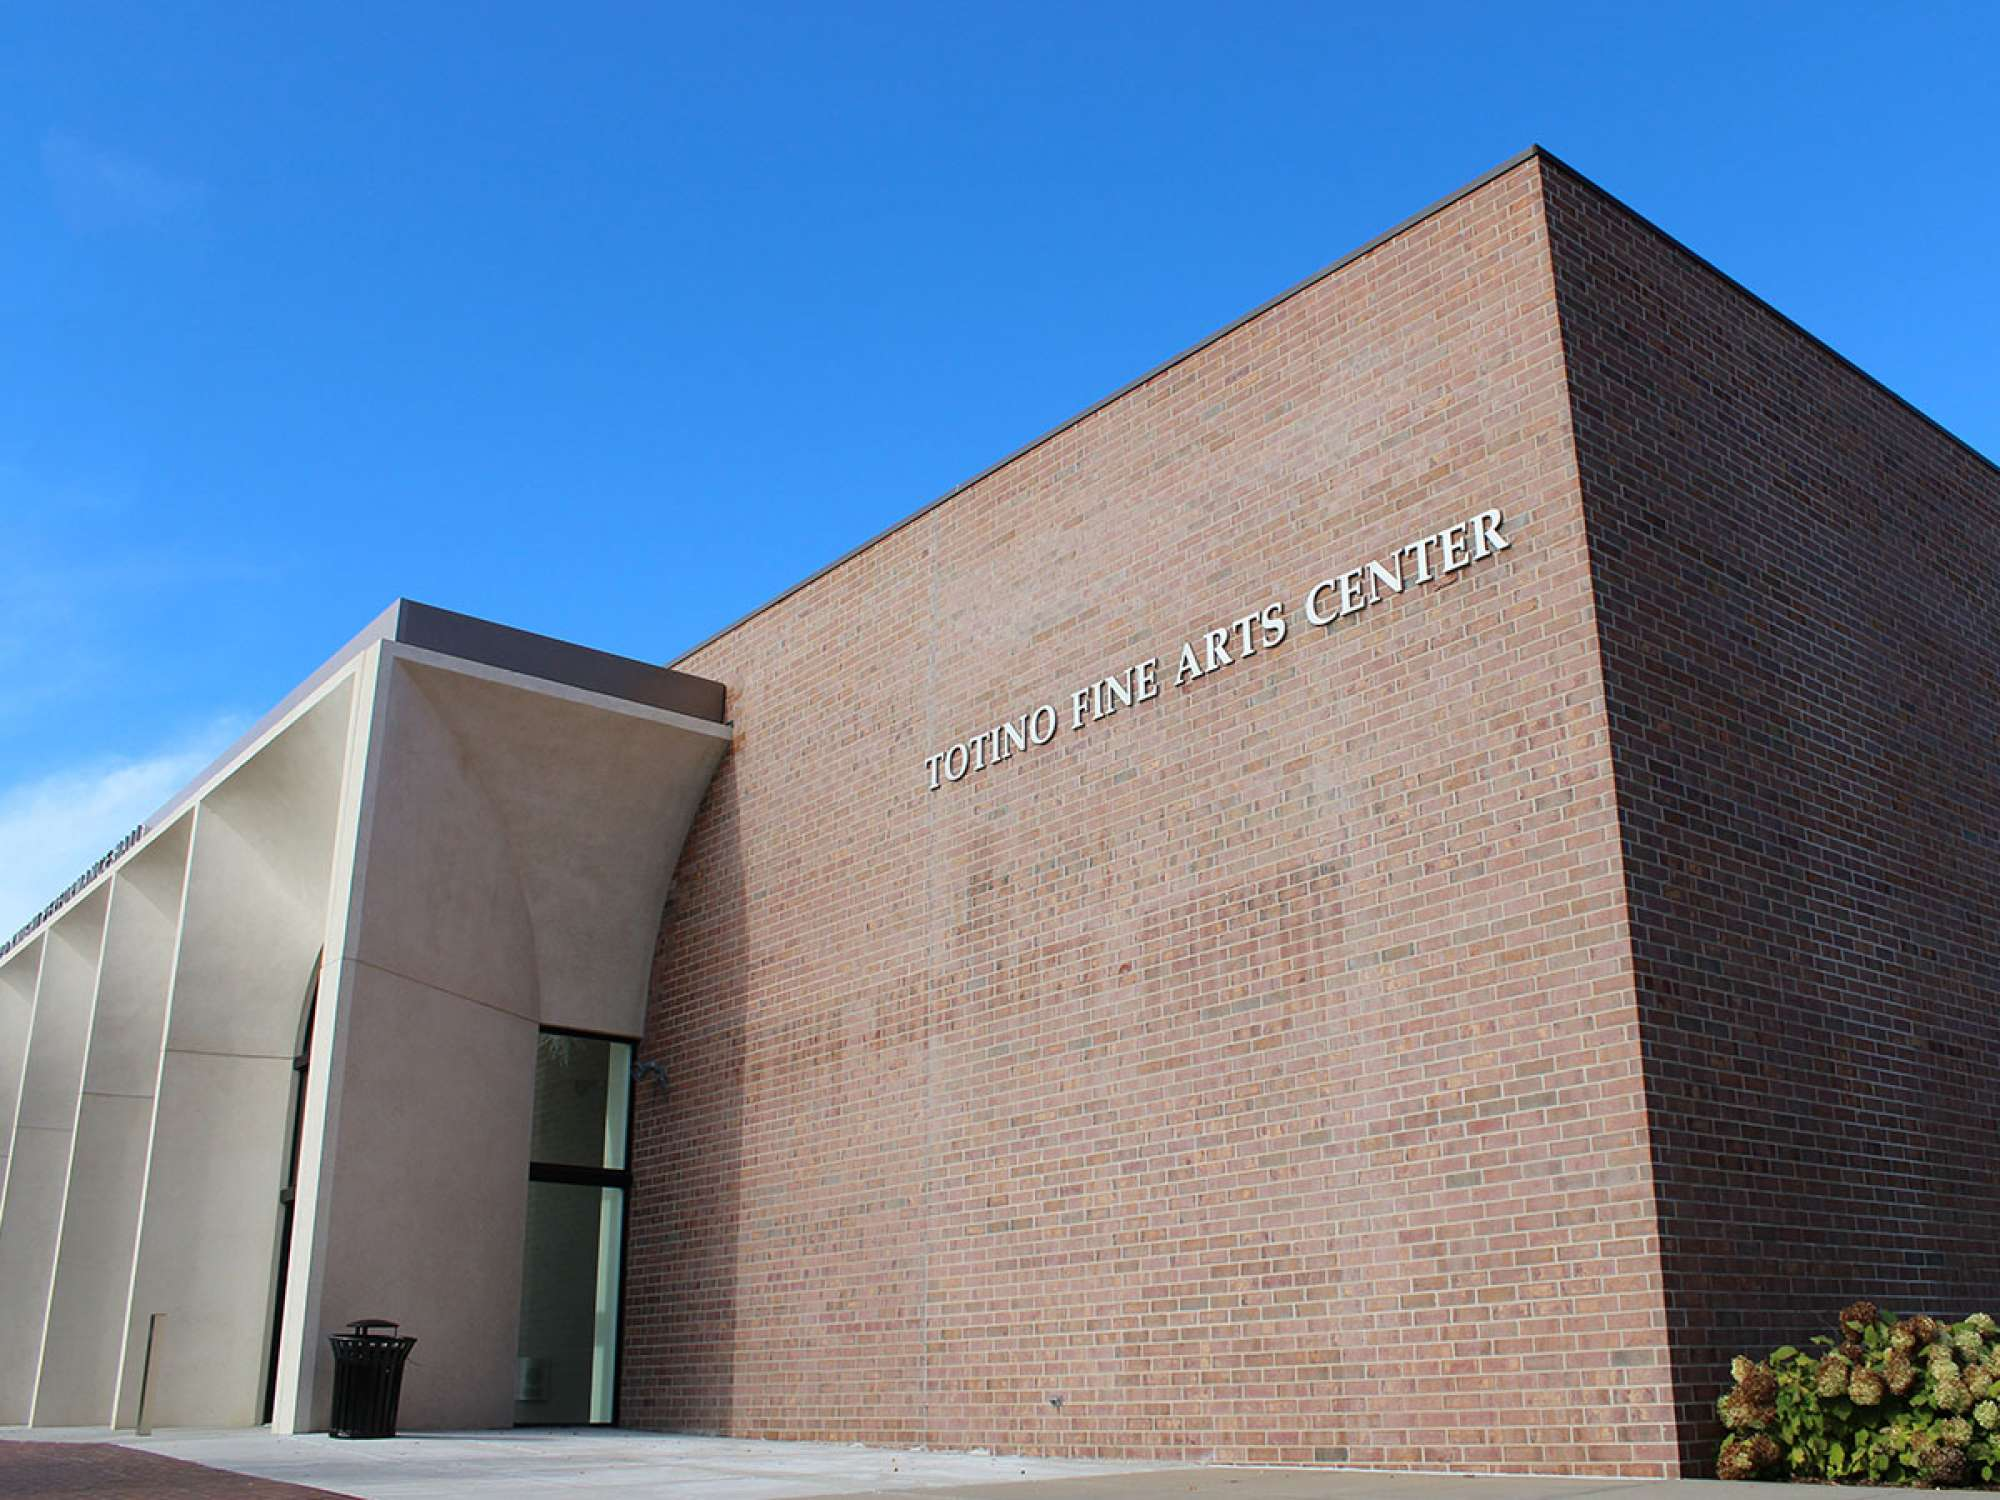 Exterior of the Totino Fine Arts Center